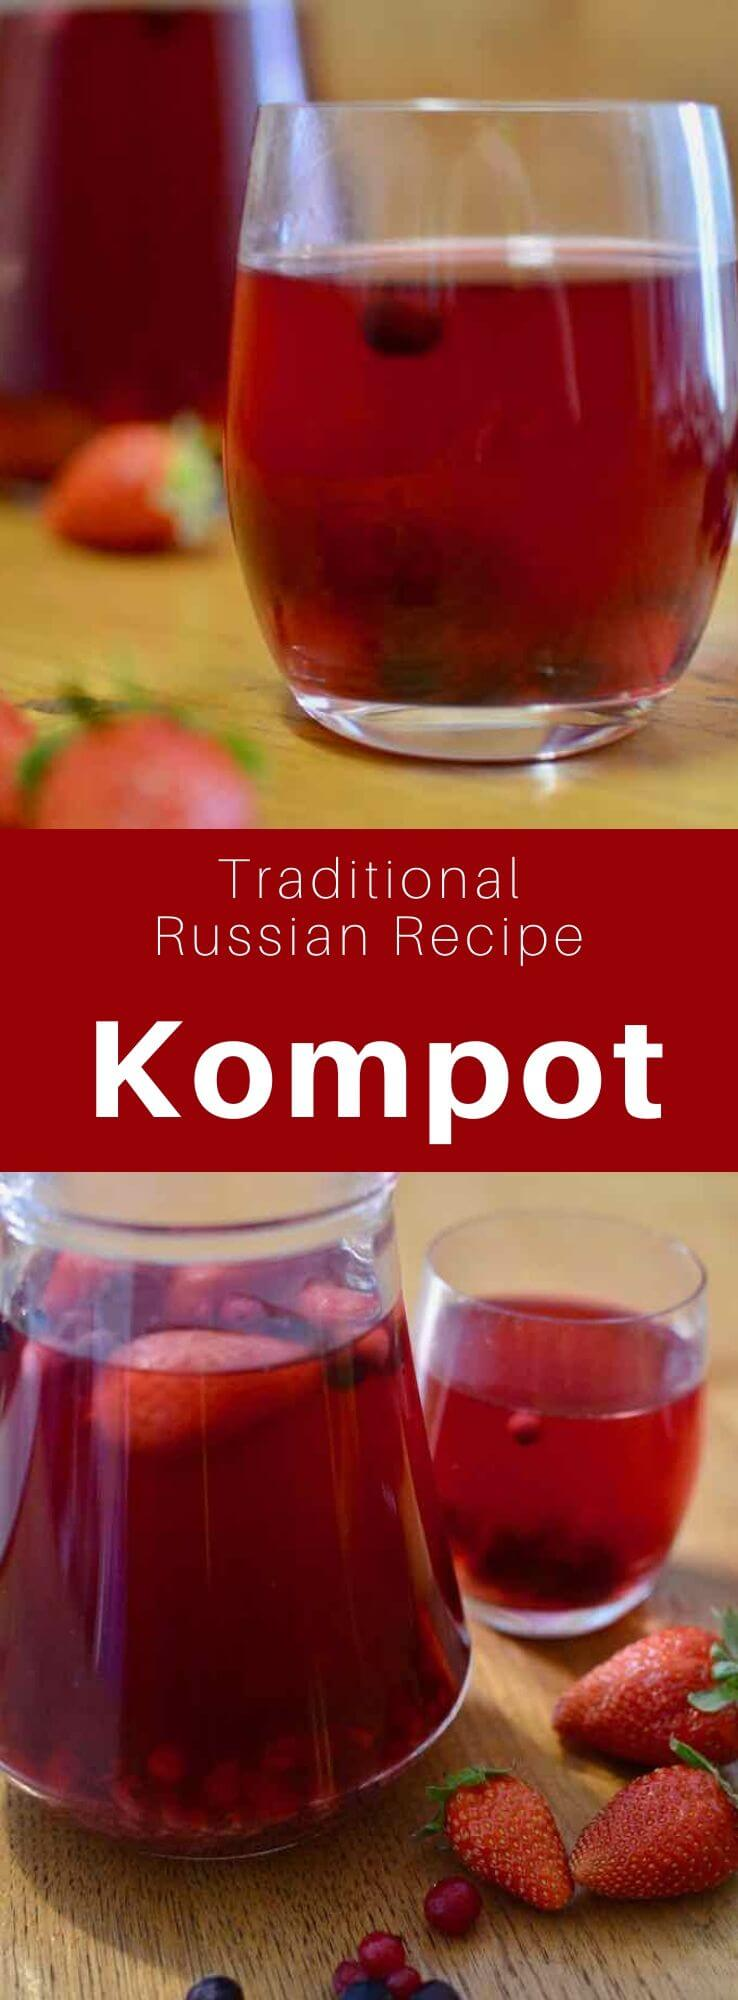 Kompot is a deliciously refreshing traditional non-alcoholic fruit-based drink that is popular in Eastern Europe and the Balkans. #Russia #Russian #RussianRecipe #RussianFood #WorldCuisine #196flavors